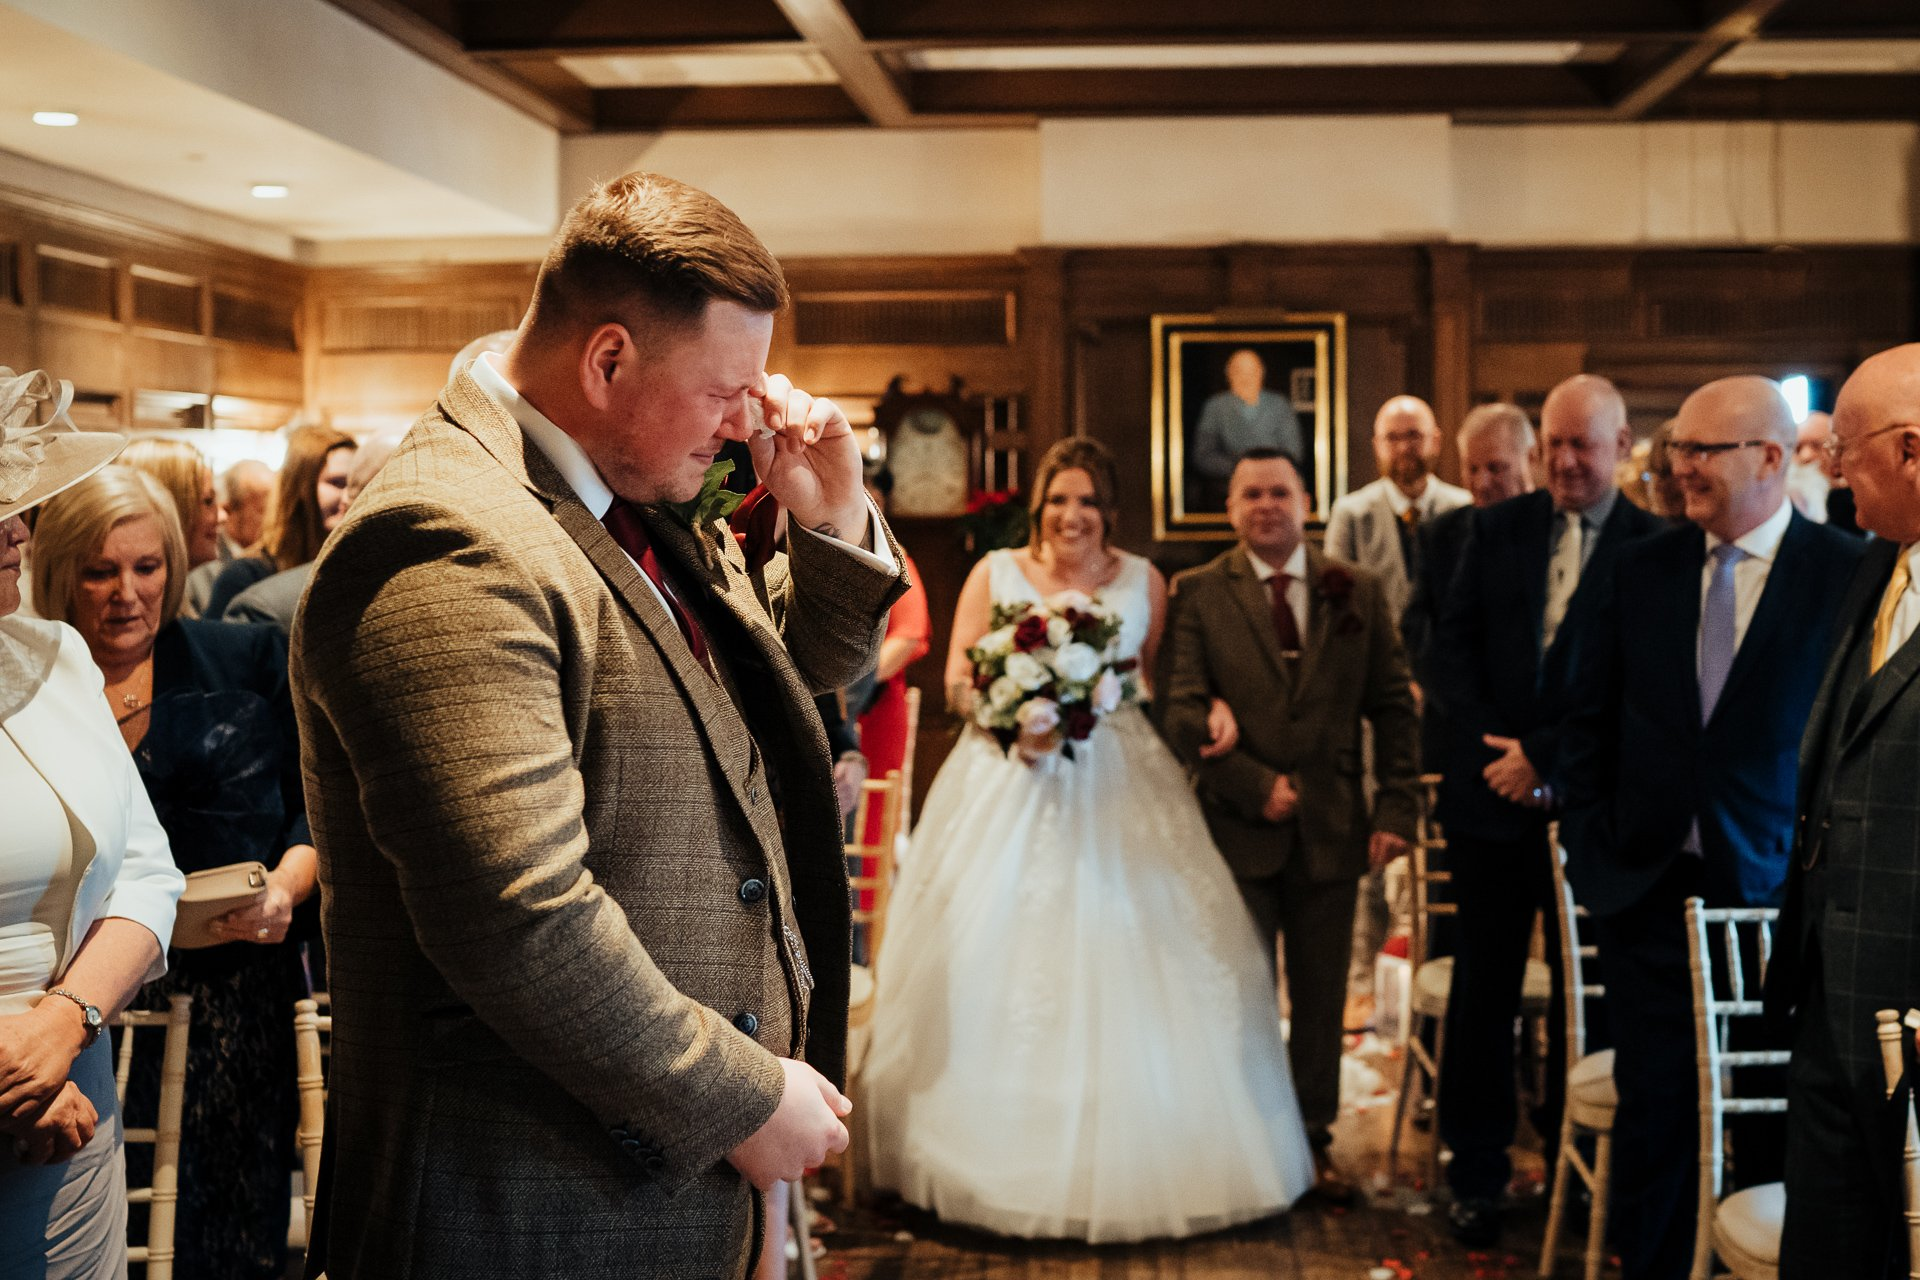 emotional Groom wiping away tears as his Bride walks down the aisle